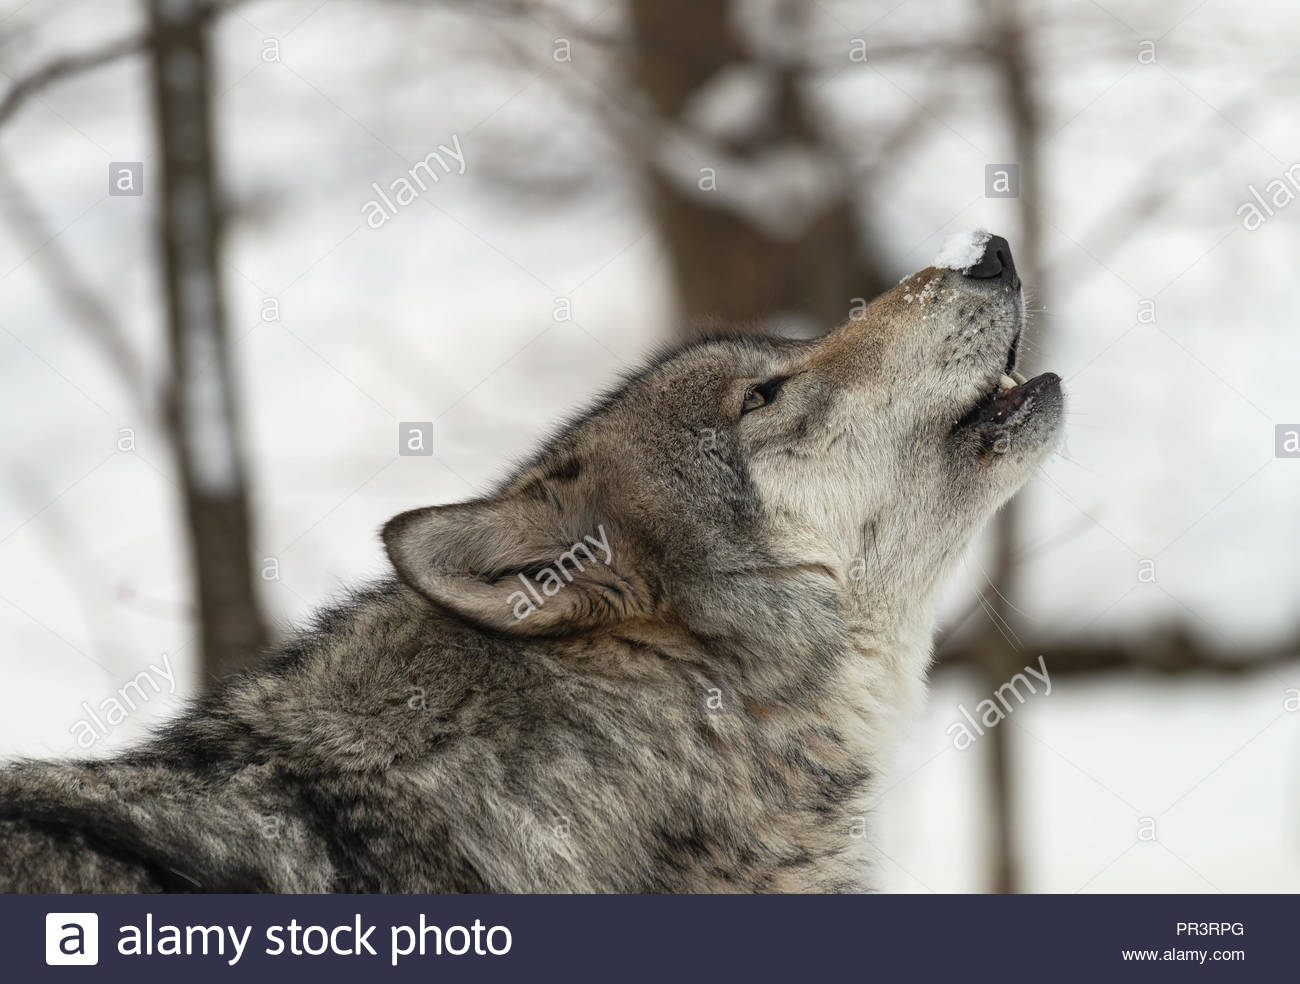 Timber Wolf (also known as a Gray Wolf or Grey Wolf) howling in the snow - Stock Image